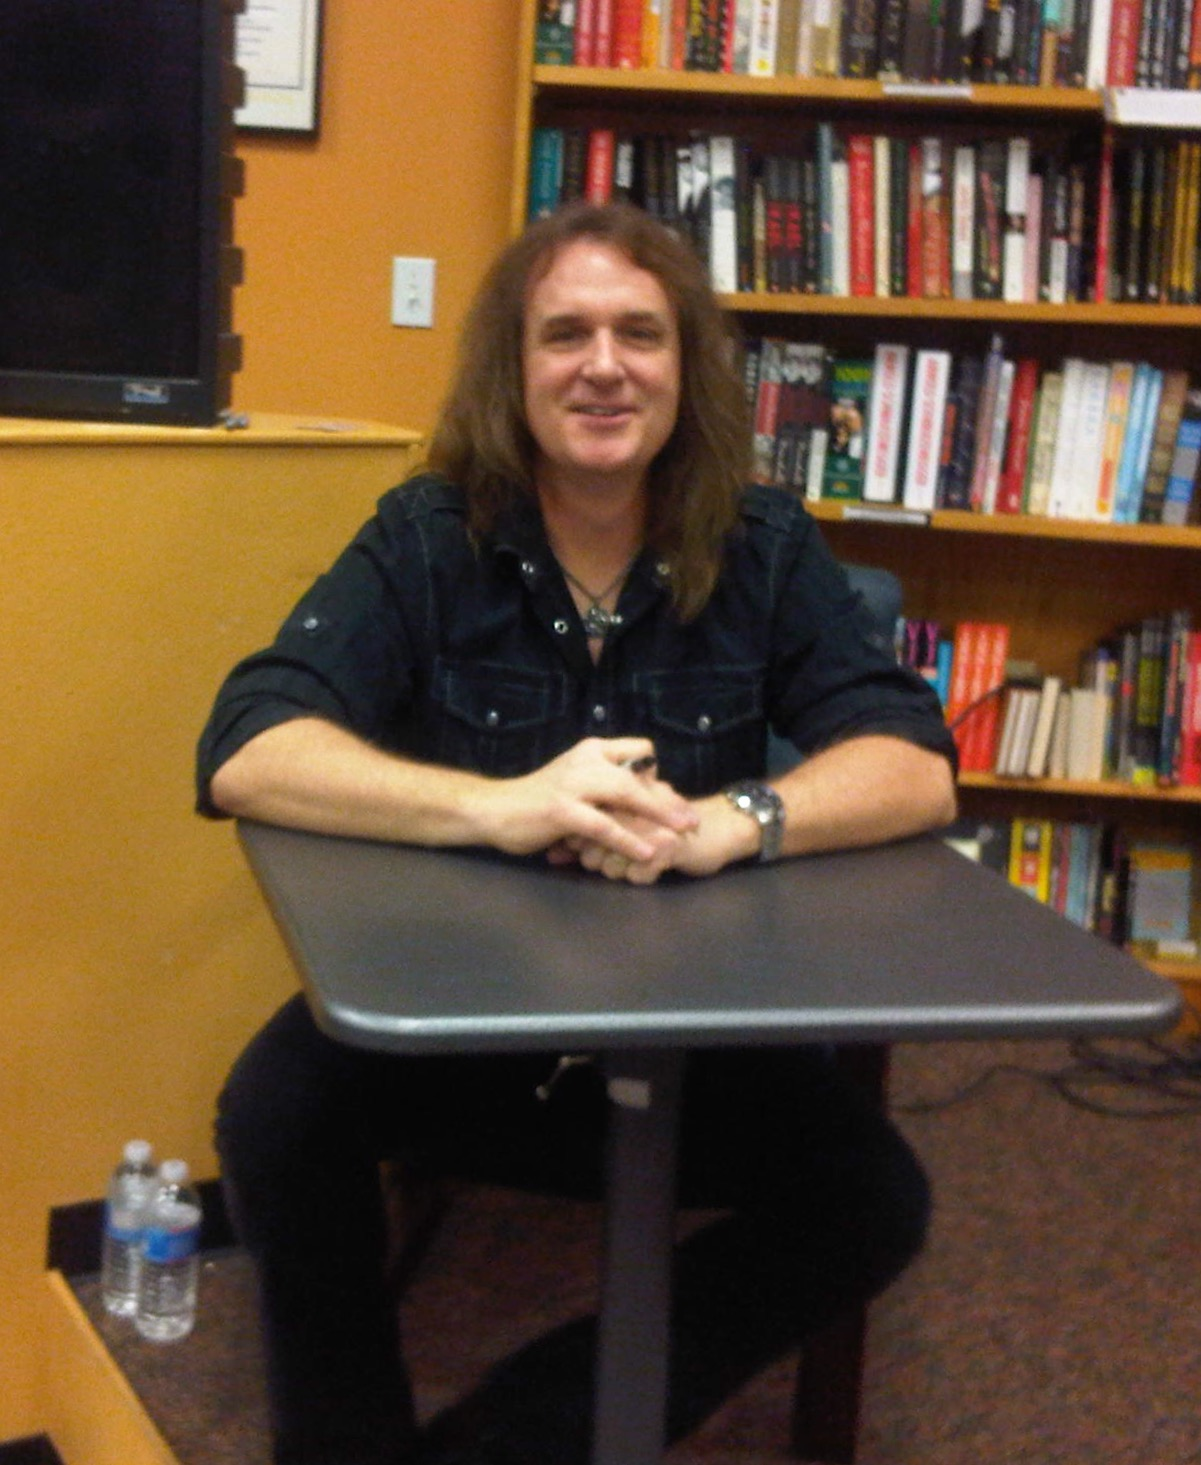 Dave Ellefson from Megadeth 11 1 13 at the releases of his book My Life in Deth